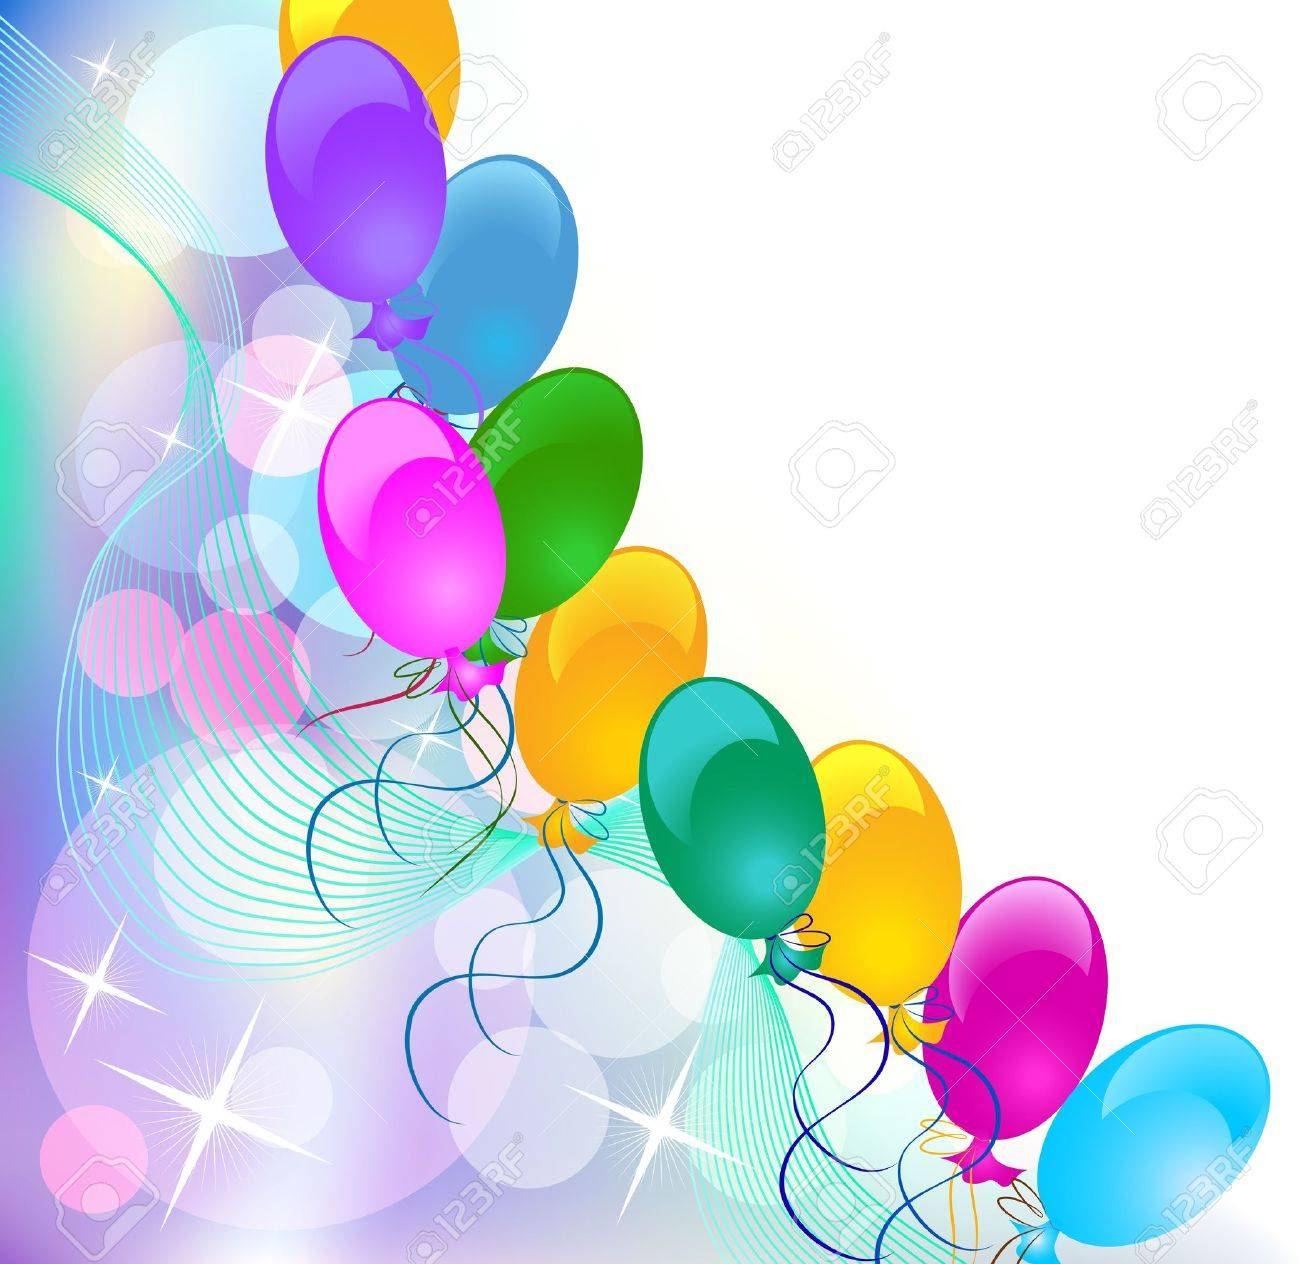 Celebratory abstract background with balloons. Stock Vector - 8776202